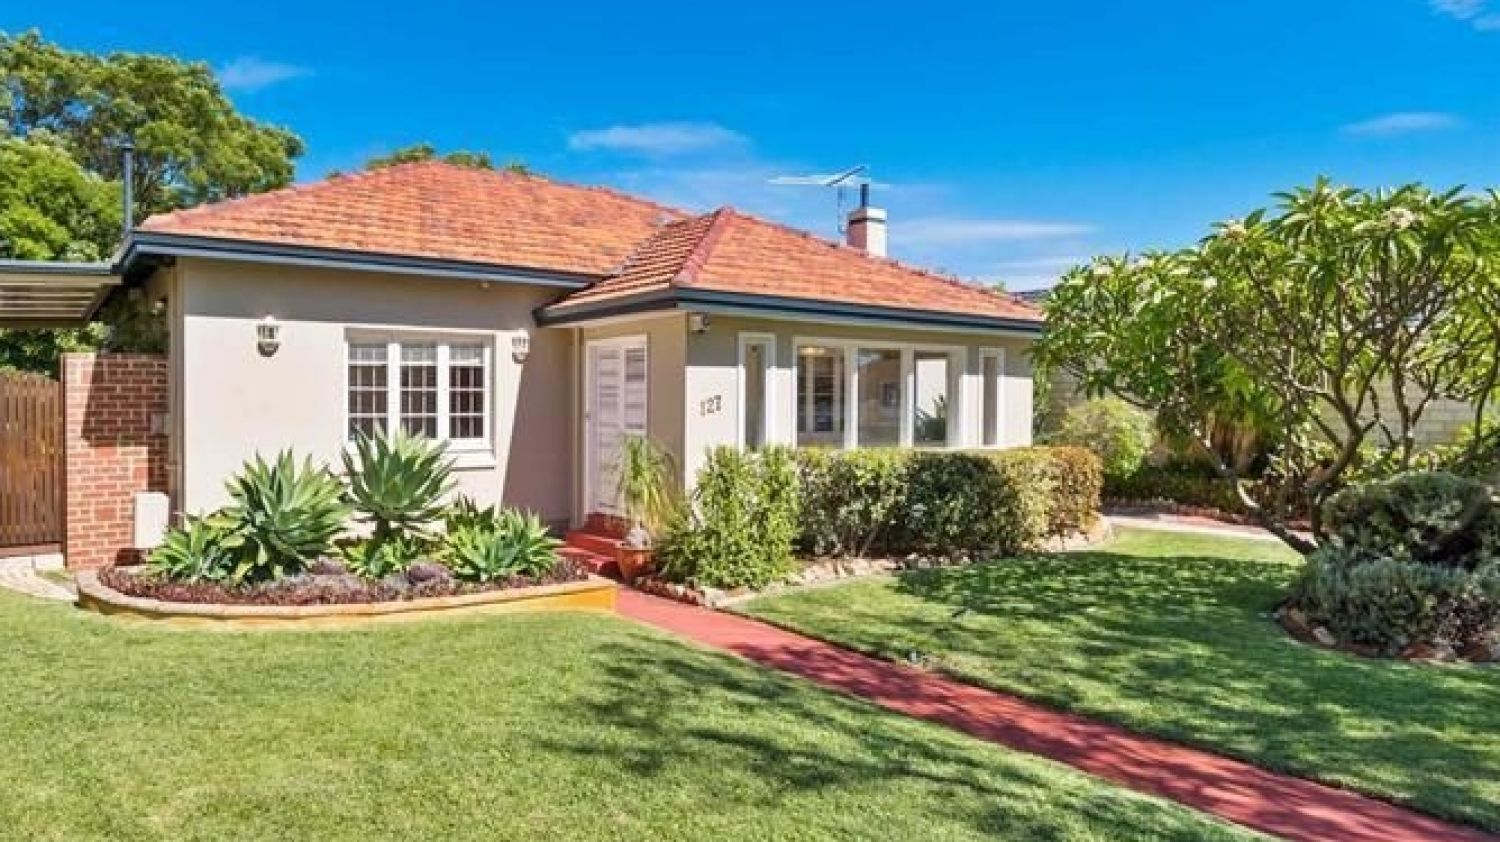 Perth property market could soon see more auctions, experts tip